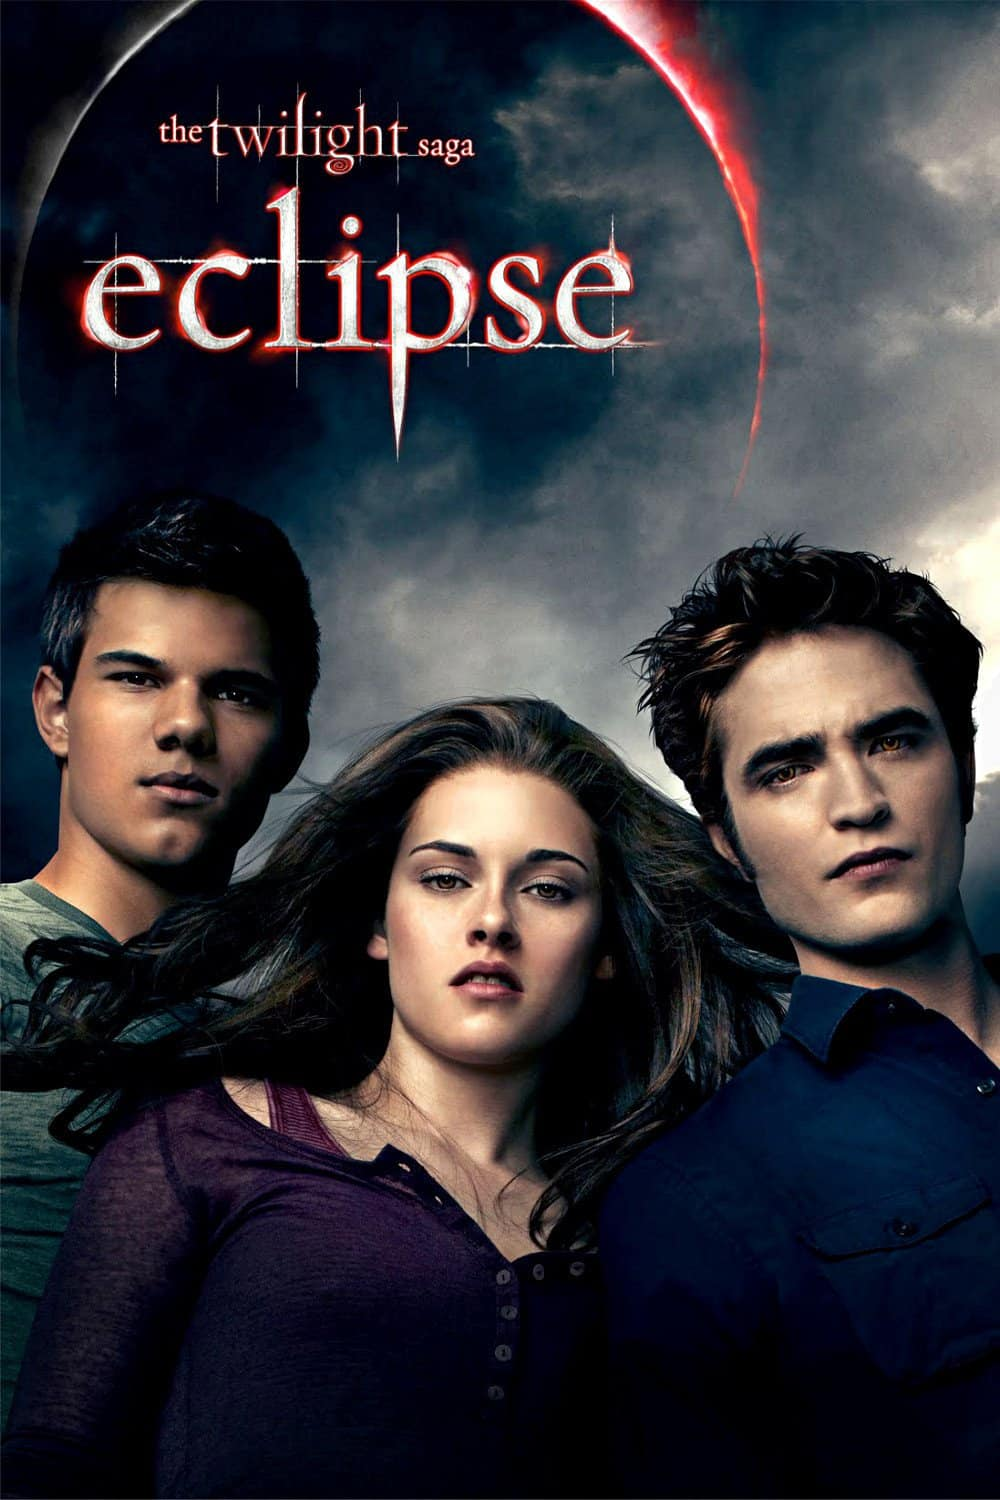 The Twilight Saga: Eclipse, 2010